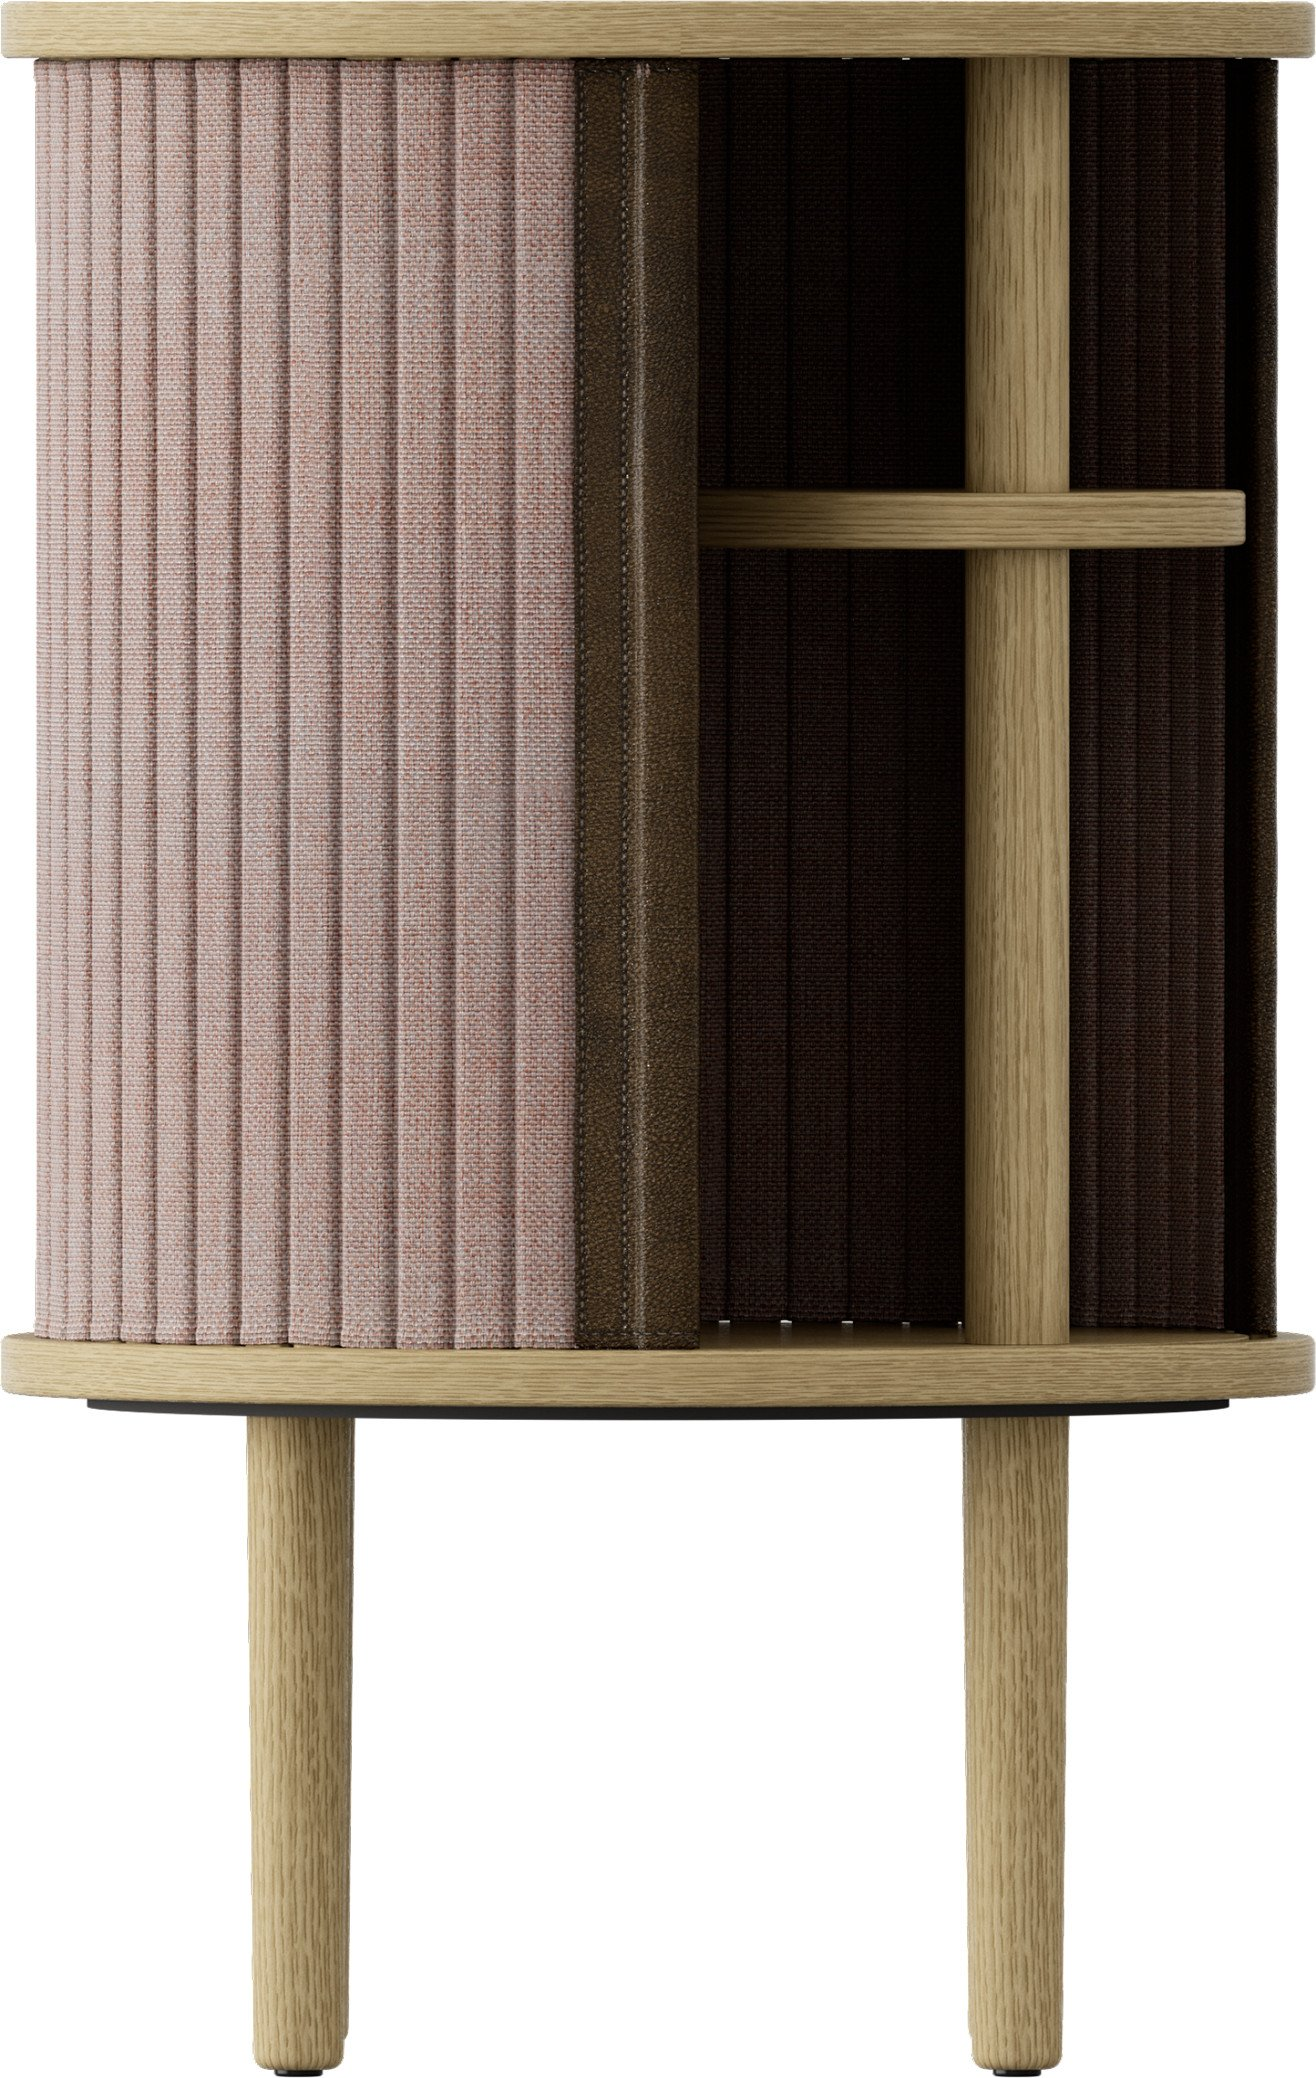 Audacious Side Table Dusty Rose by J. Søndergaard for UMAGE